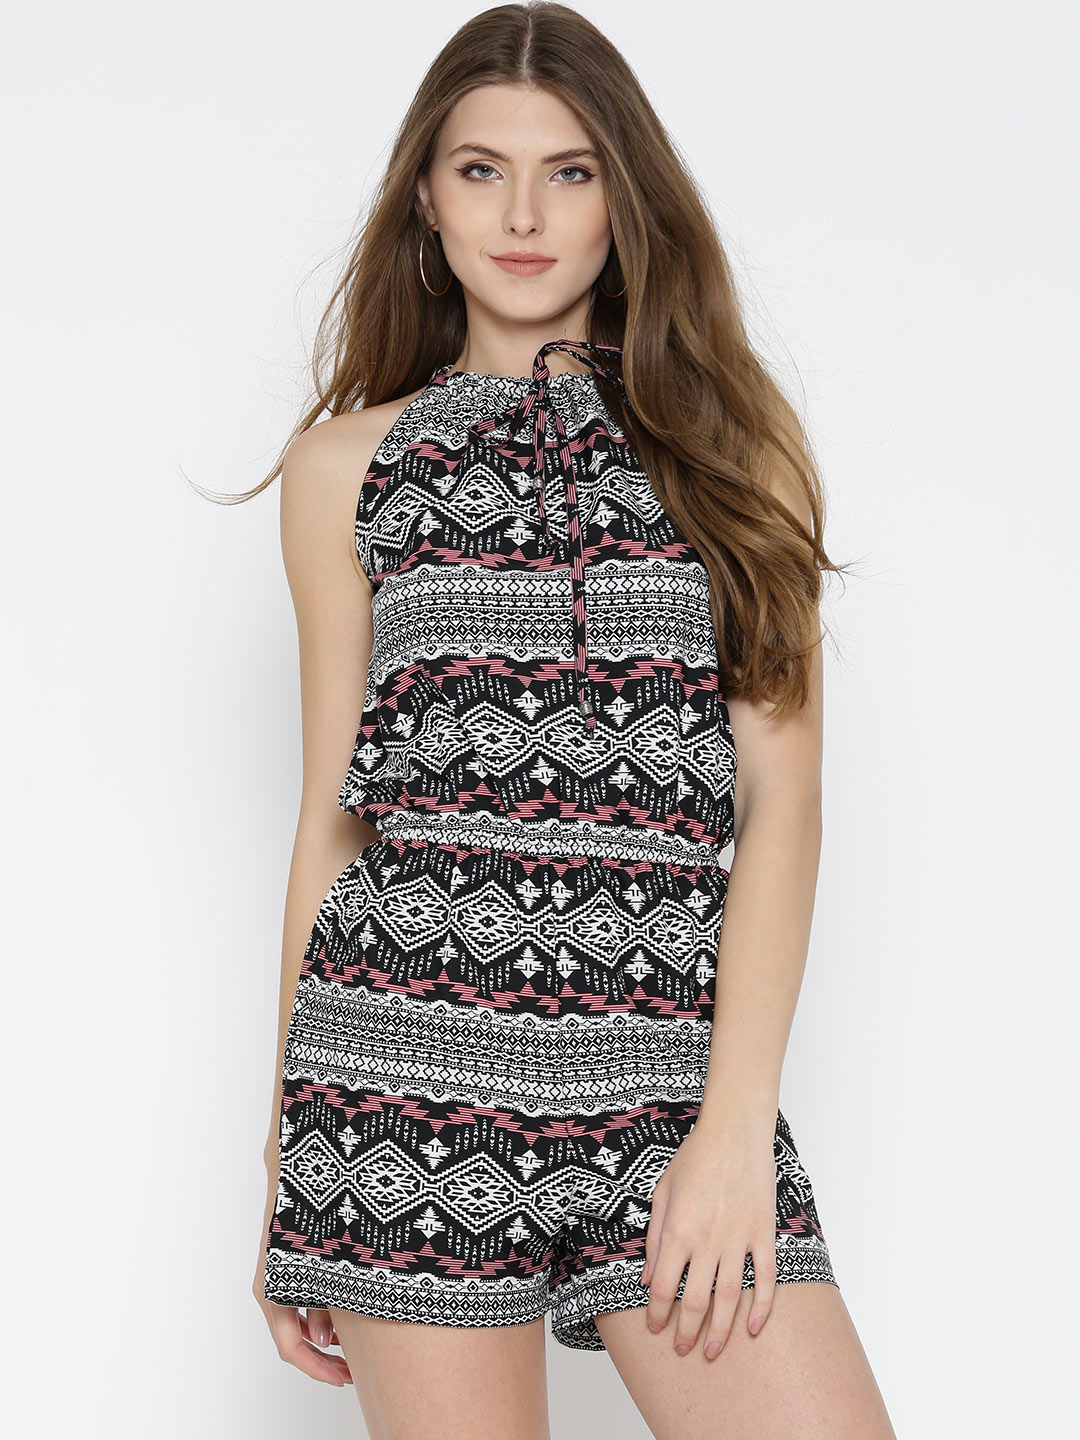 784ee3abd2 Playsuits Jumpsuit - Buy Playsuits Jumpsuit online in India